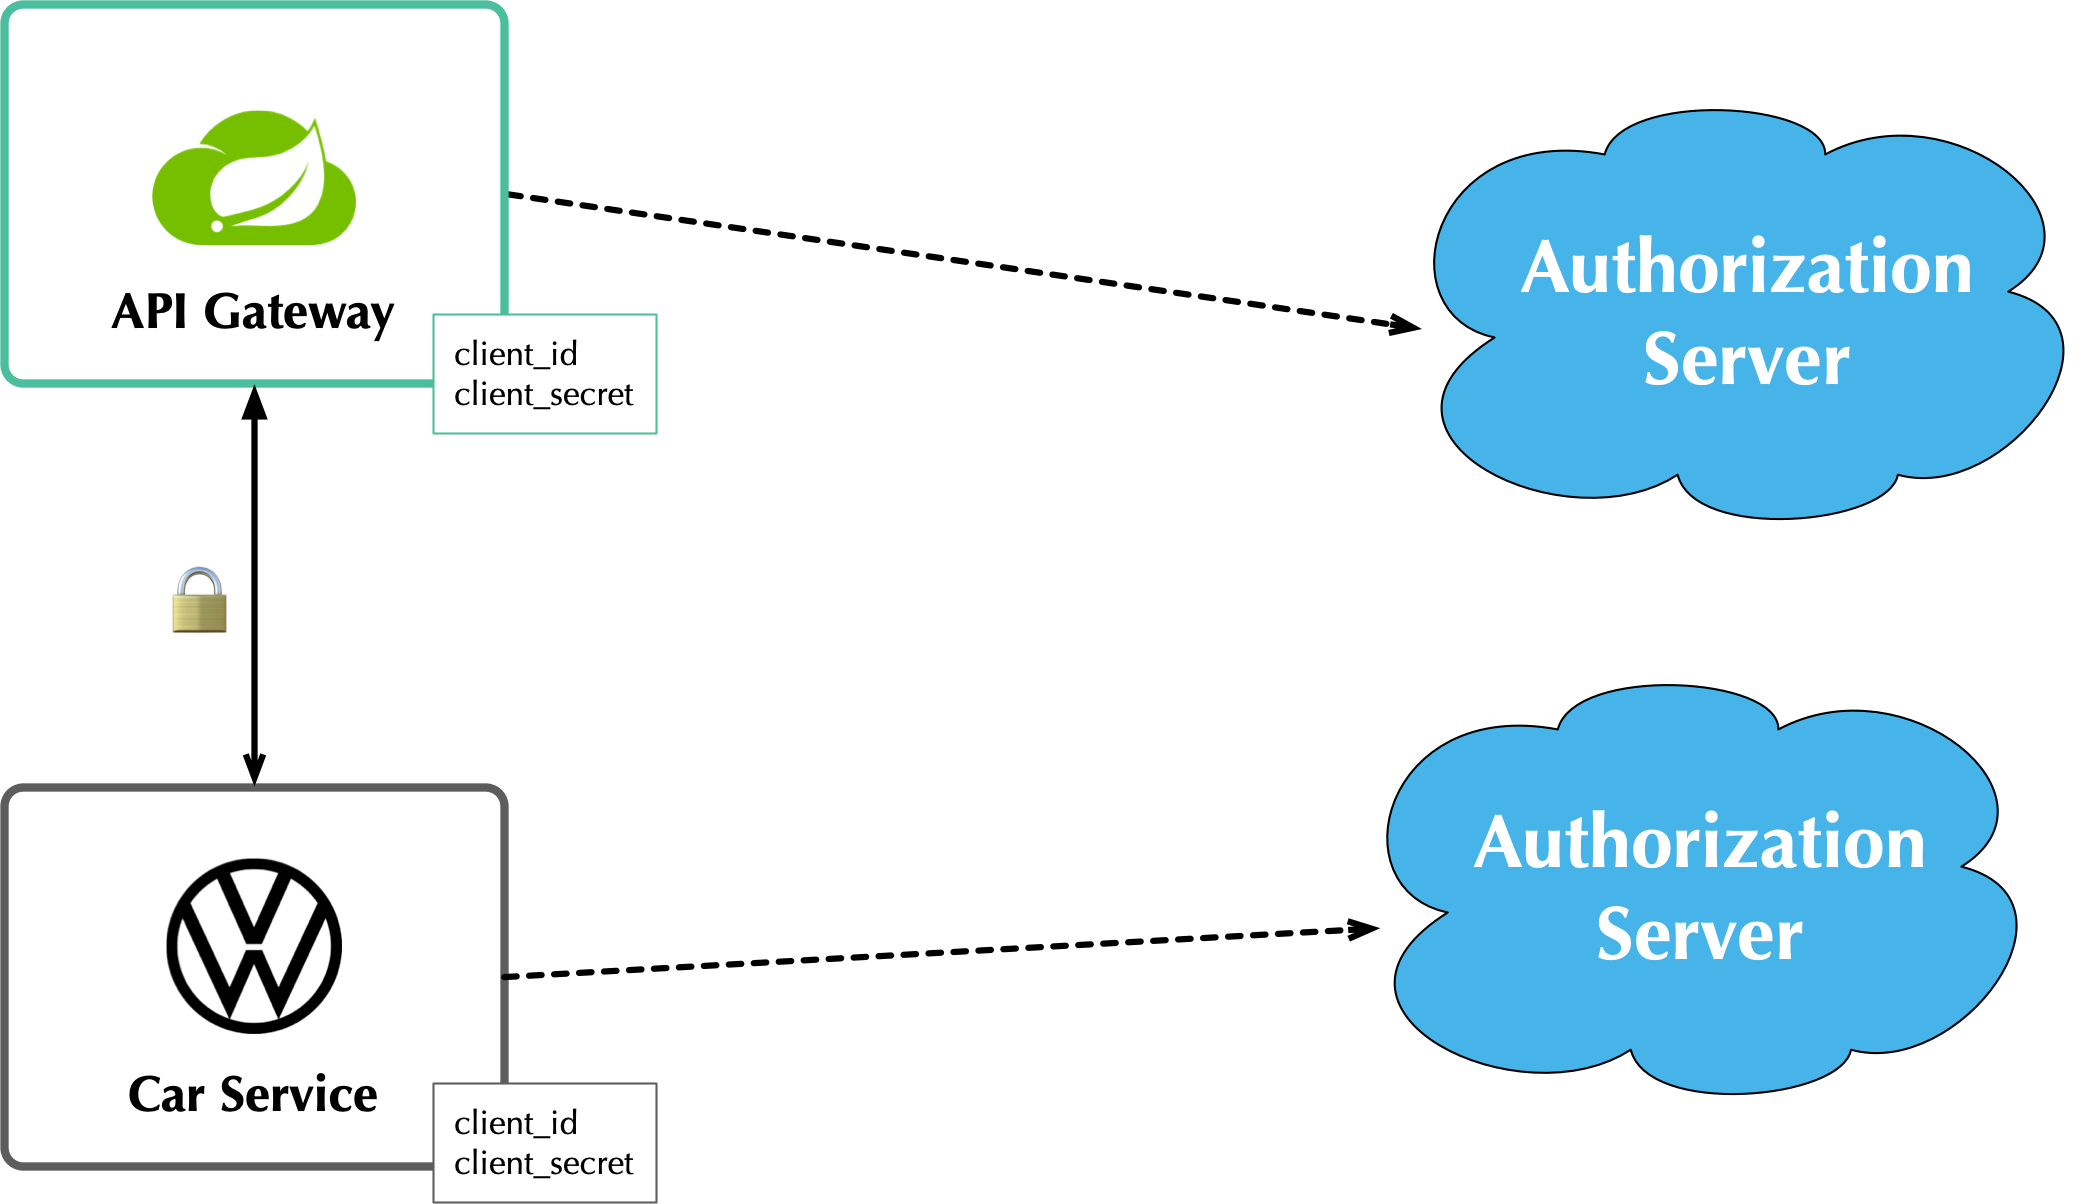 Auth Server: One-to-One